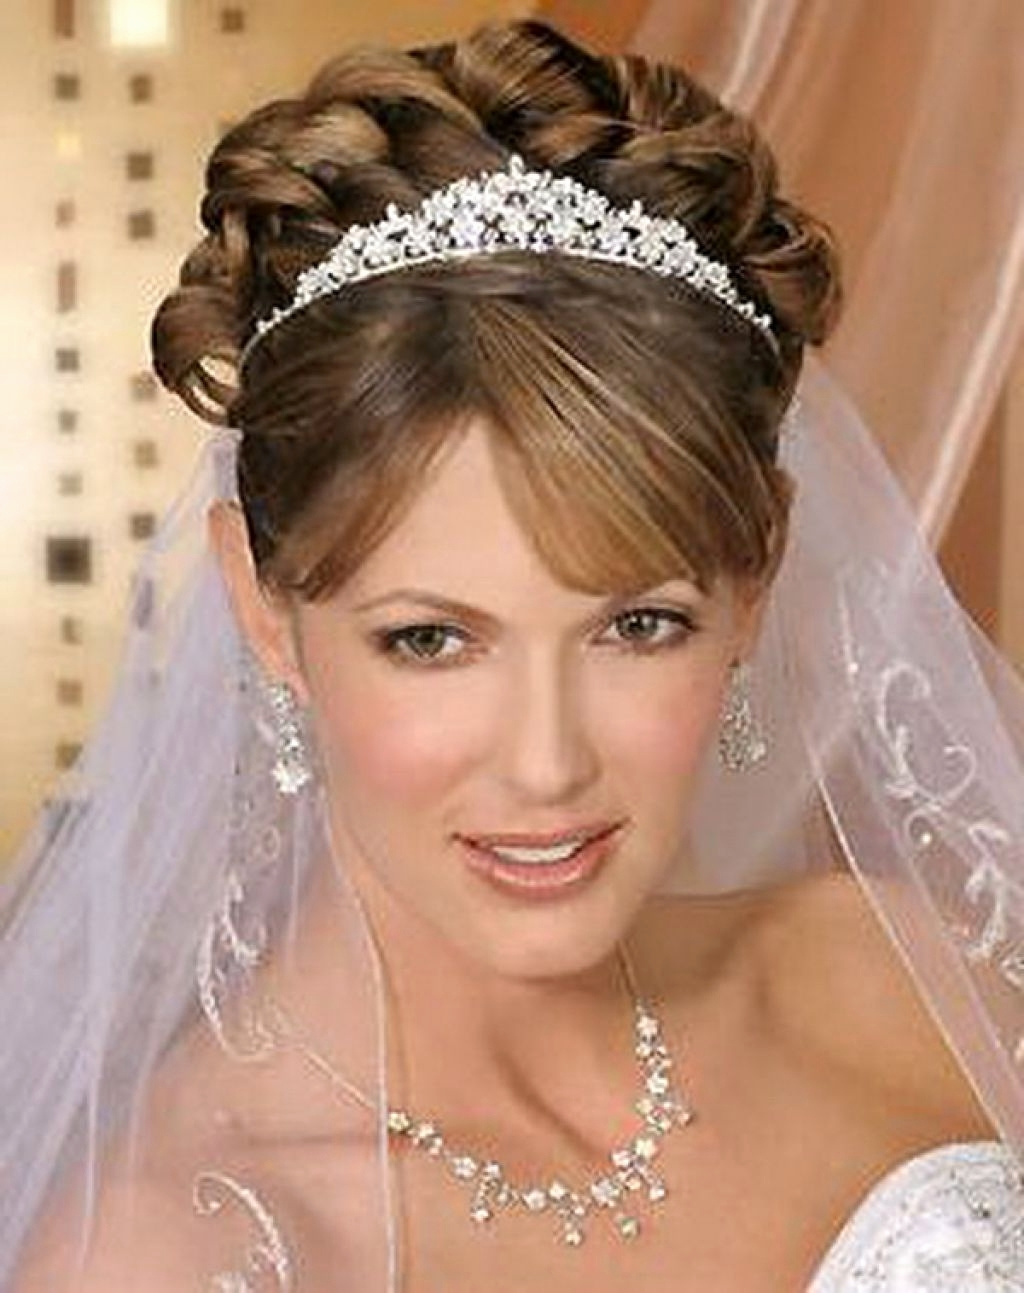 Wedding Hairstyles With Tiara Unique Simple Wedding Hairstyles For Intended For Most Recent Wedding Hairstyles For Short Hair With Tiara (View 10 of 15)